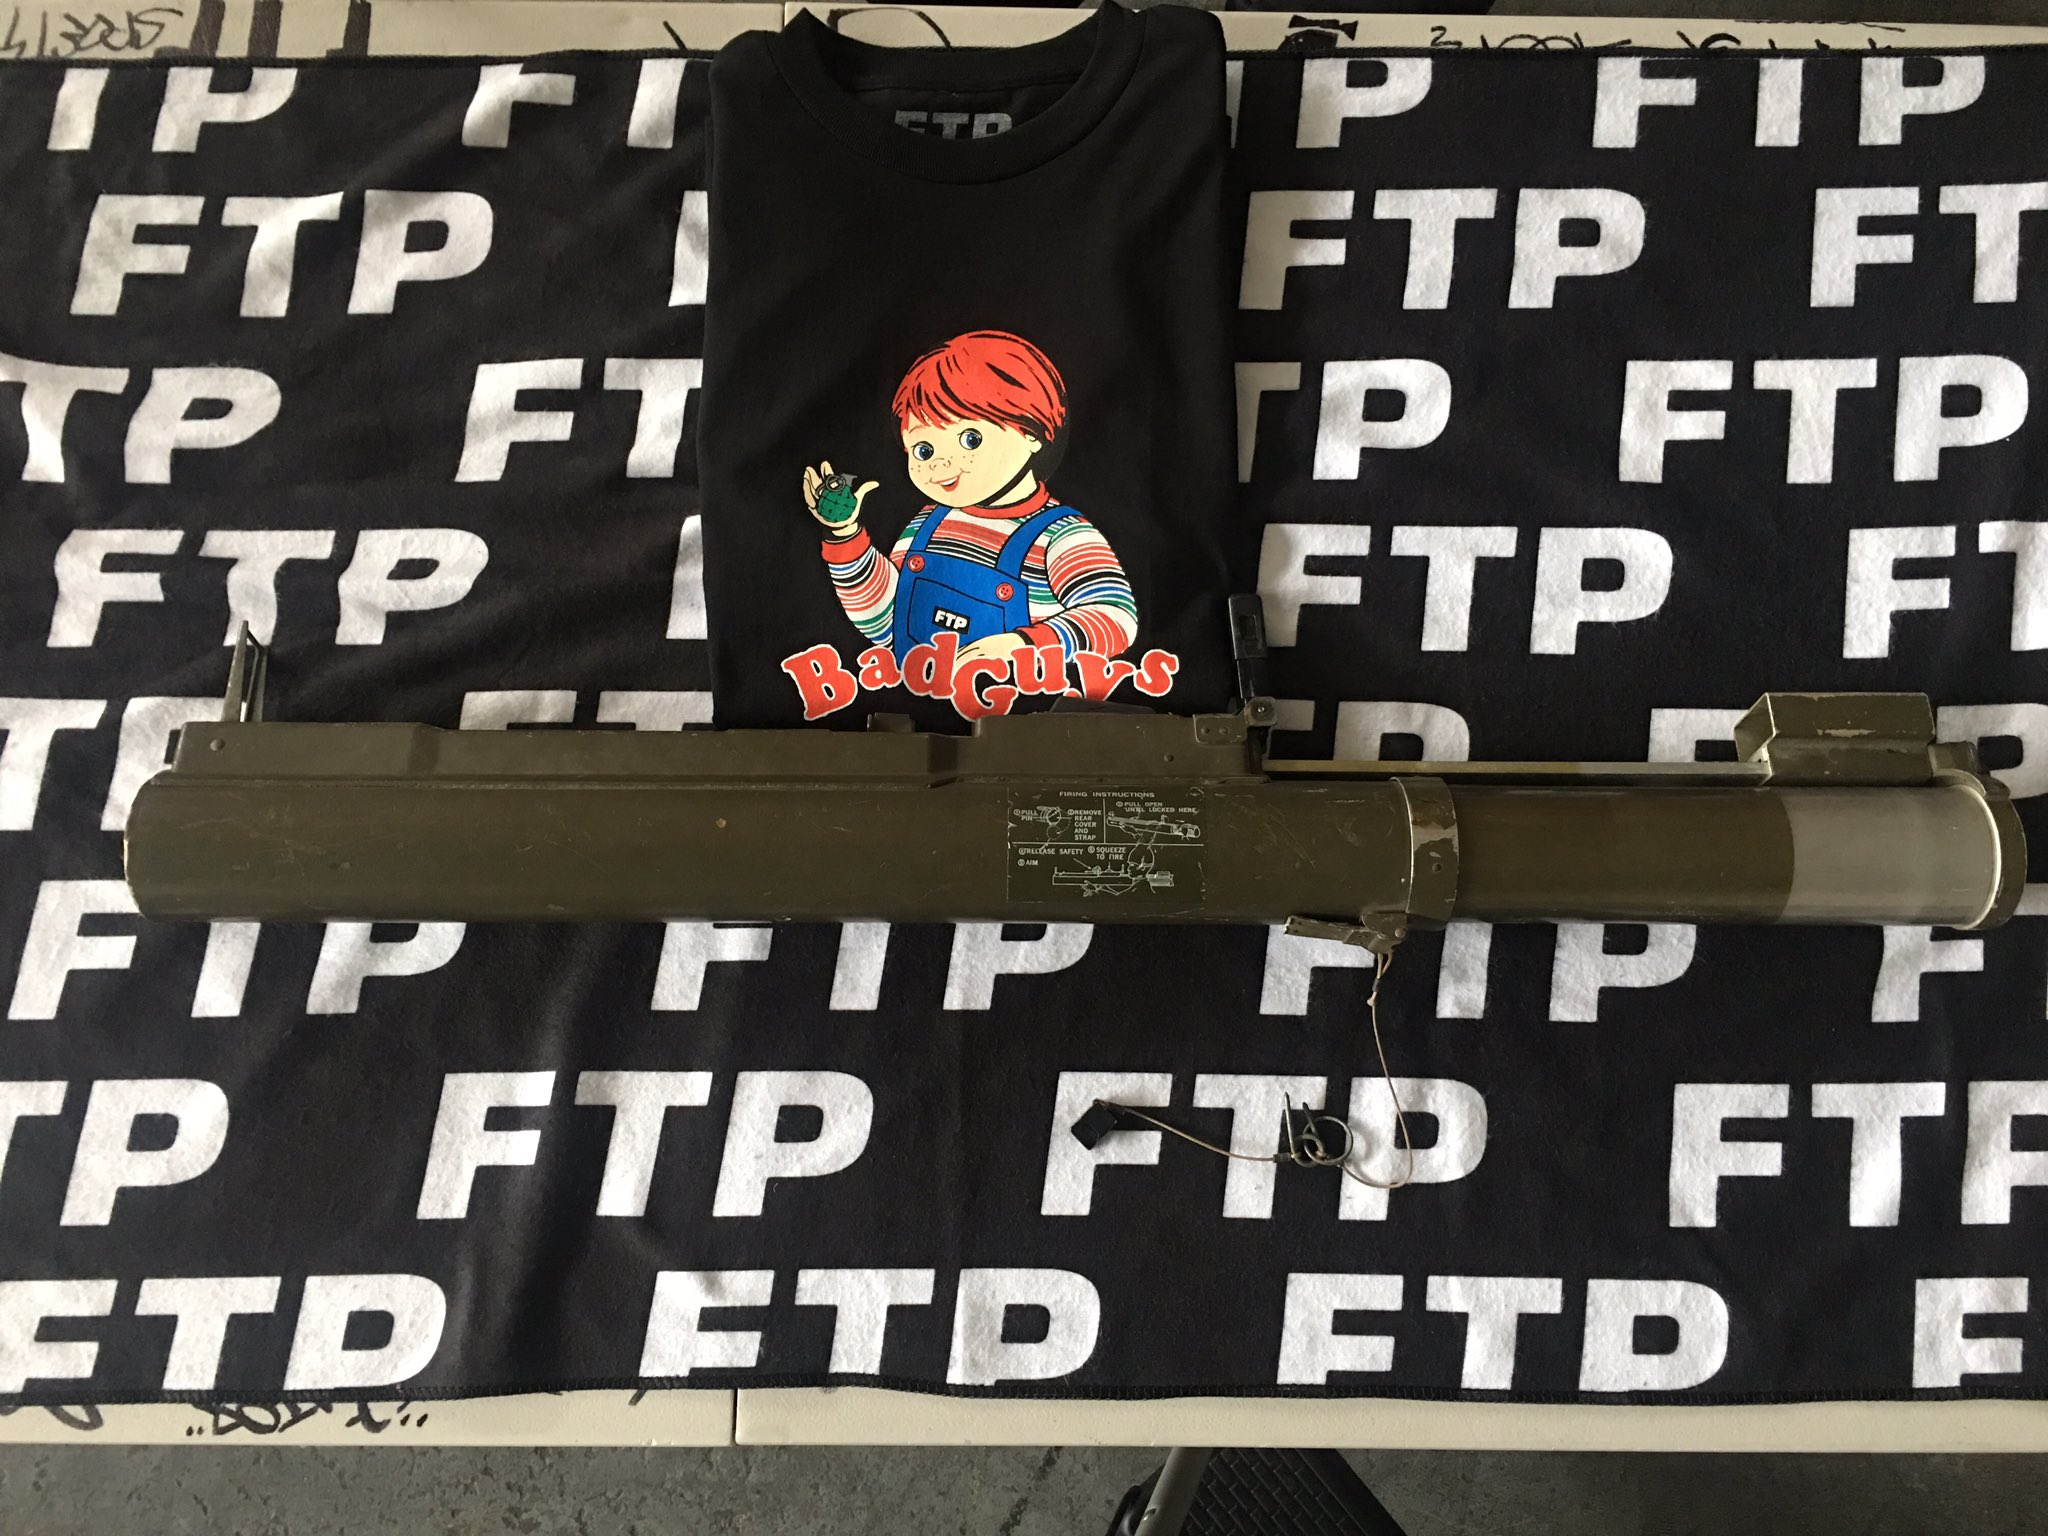 Zac On Twitter New Product Early March Ftp